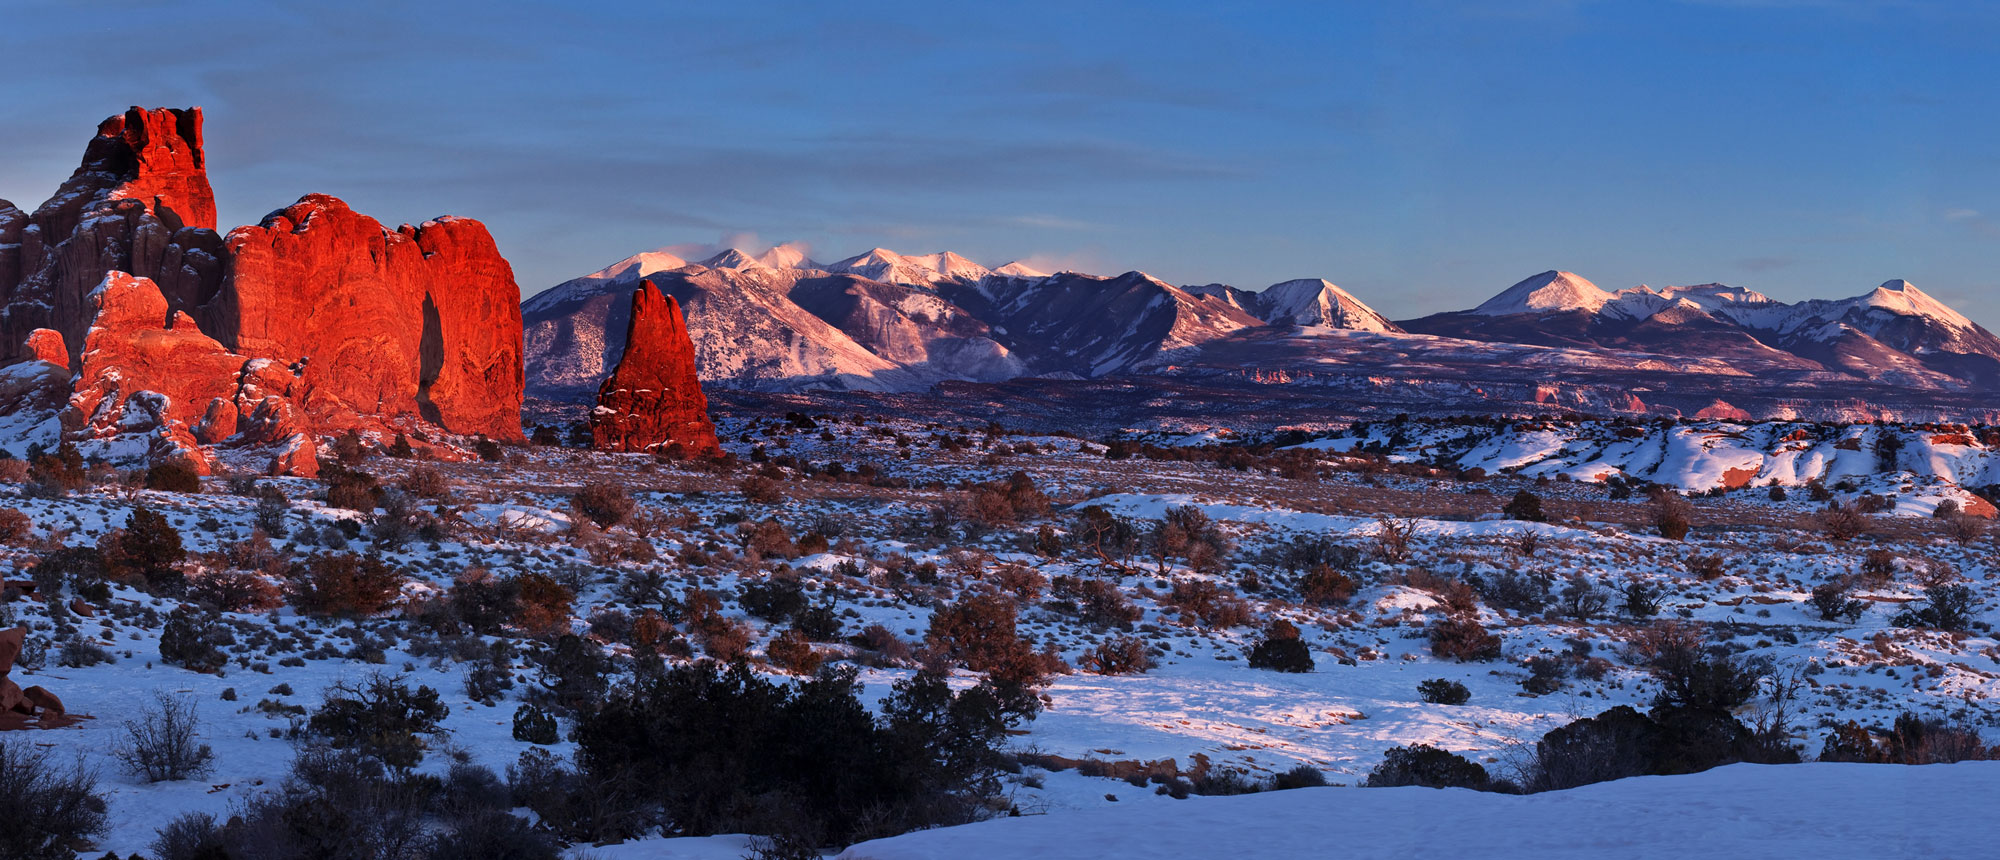 A snowy vista with white mountaintops in the distance and red clay formations in the foreground.